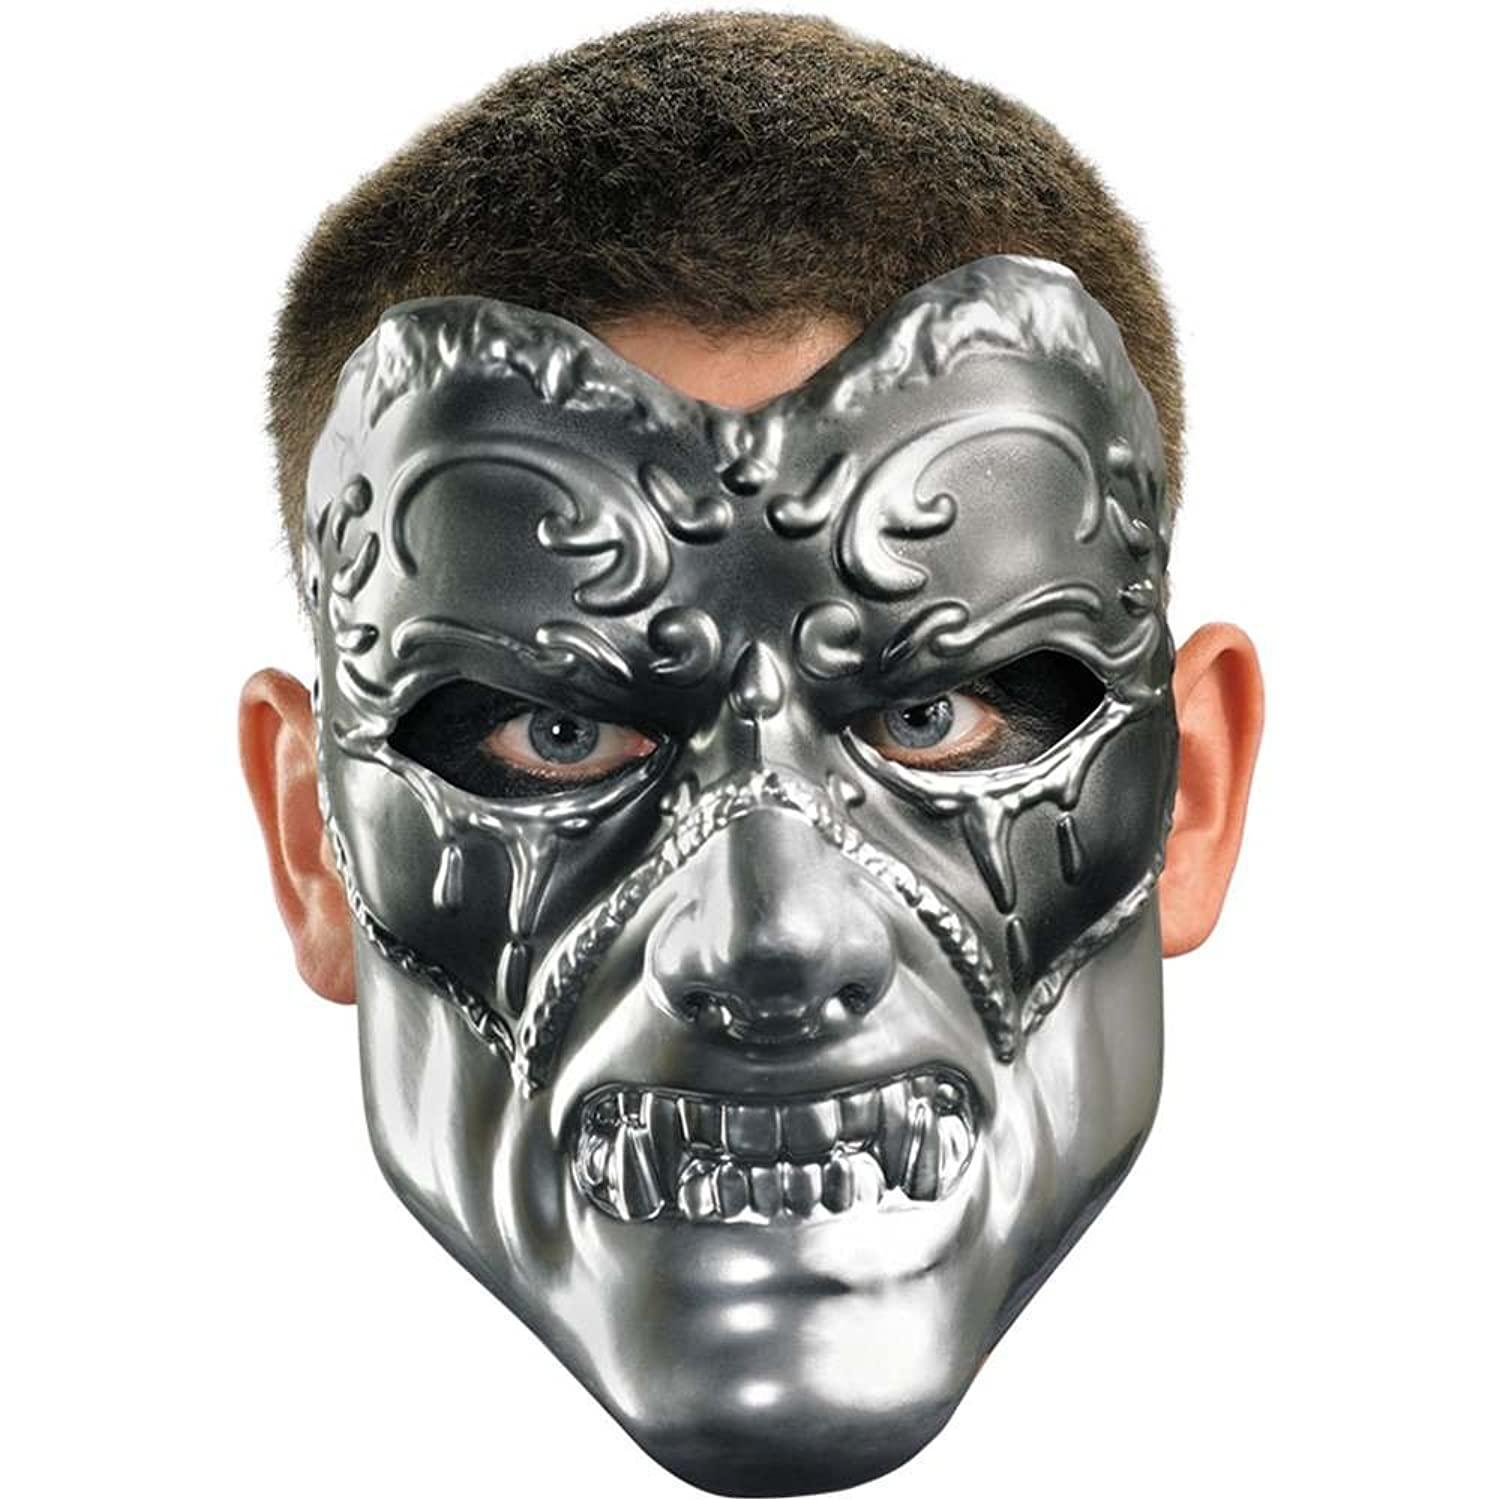 amazoncom disguise costumes evil masquerade mask adult clothing - Amazon Halloween Costumes Men